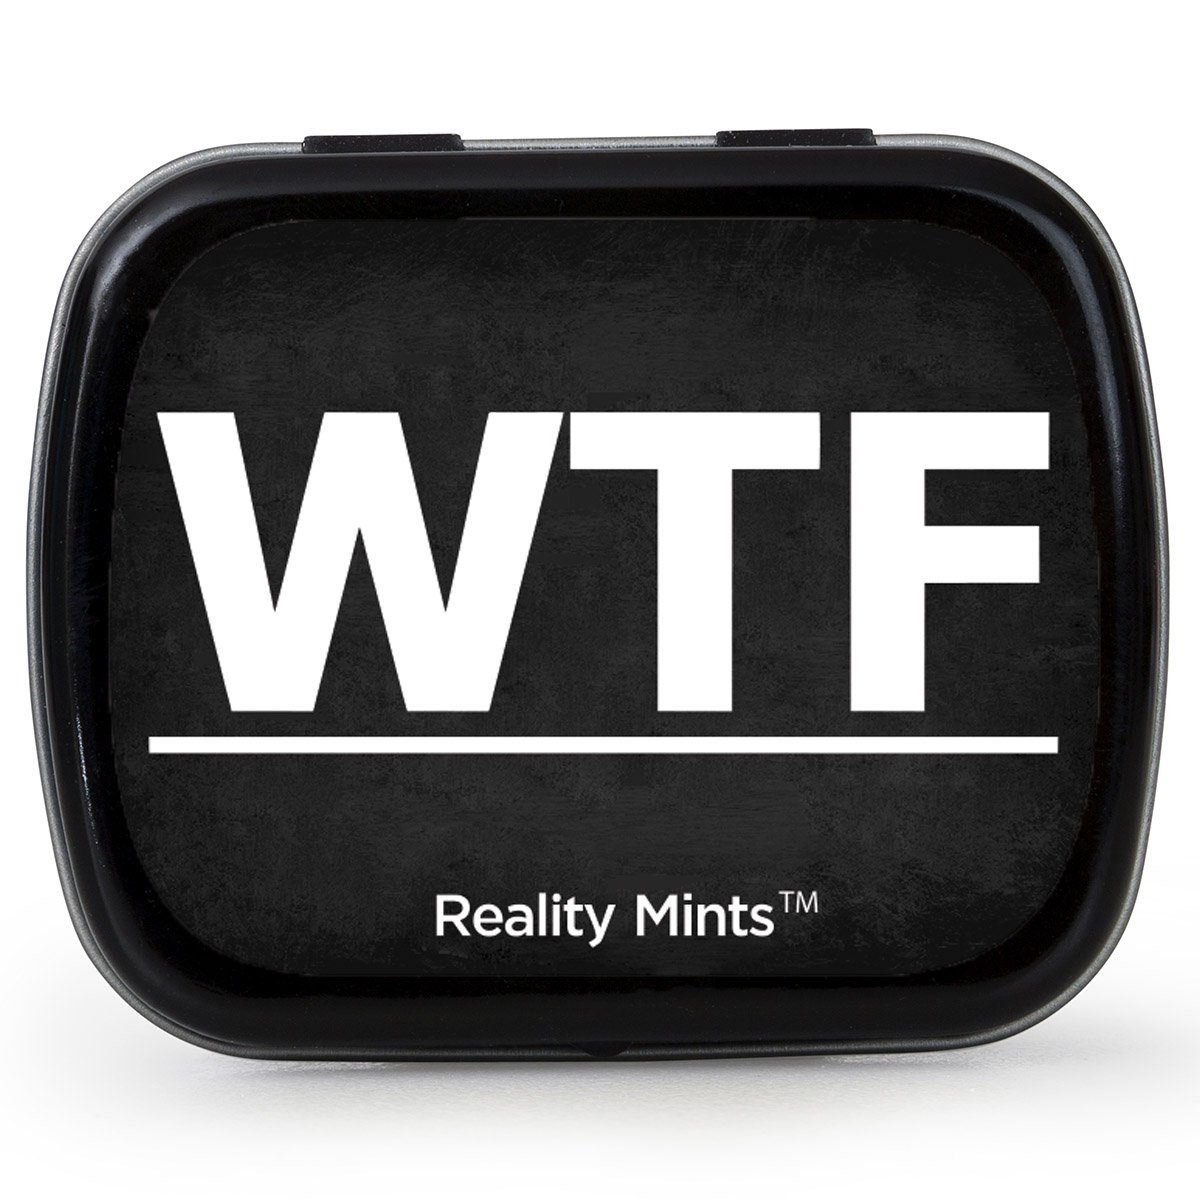 WTF Mints – WTF design mint tin – Novelty candy for friends – Wintergreen breath mints, sugar-free